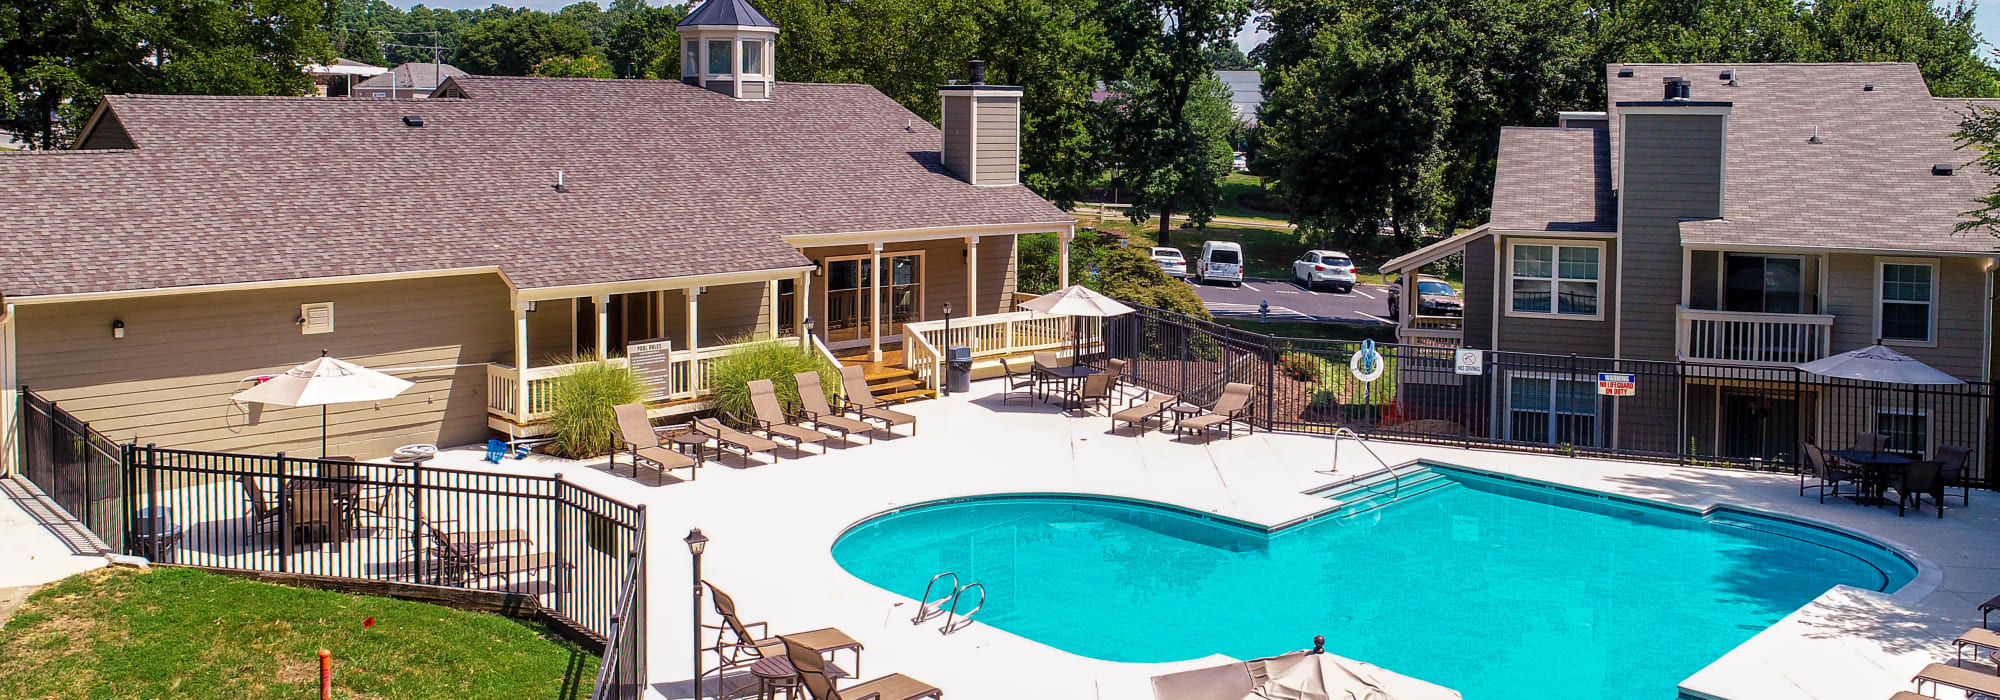 Beautiful swimming pool at Hunter's Chase Apartments in Midlothian, Virginia